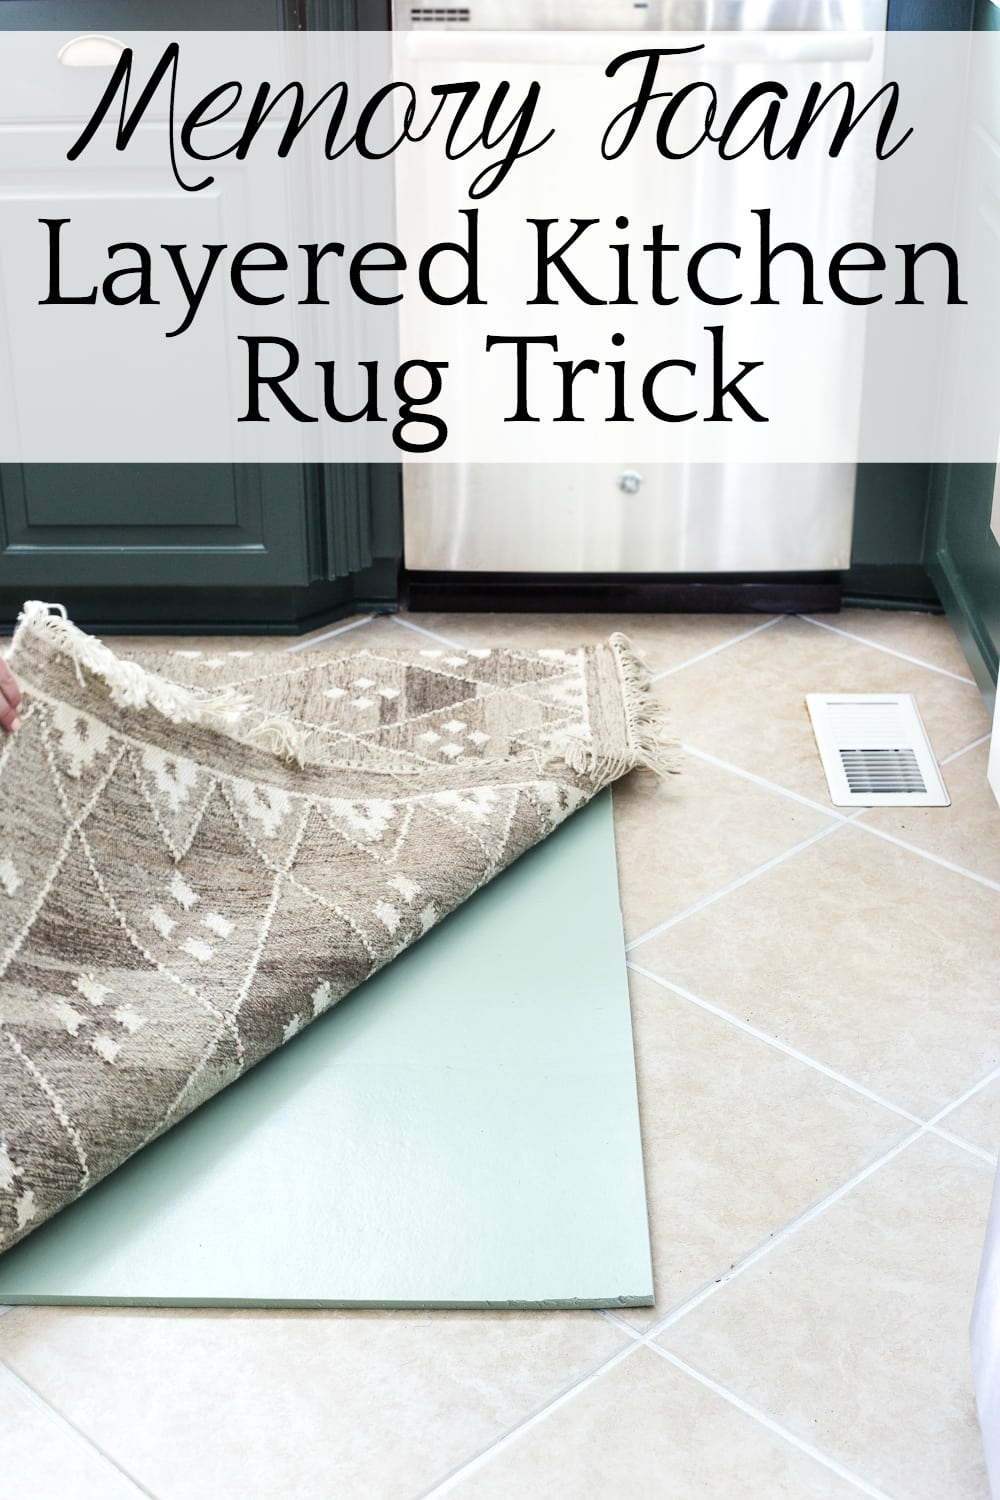 How to refresh tile grout cheaply and easily and add comfort to your kitchen floor with a layered memory foam kitchen rug. #kitchenfloor #kitchenrug #tile